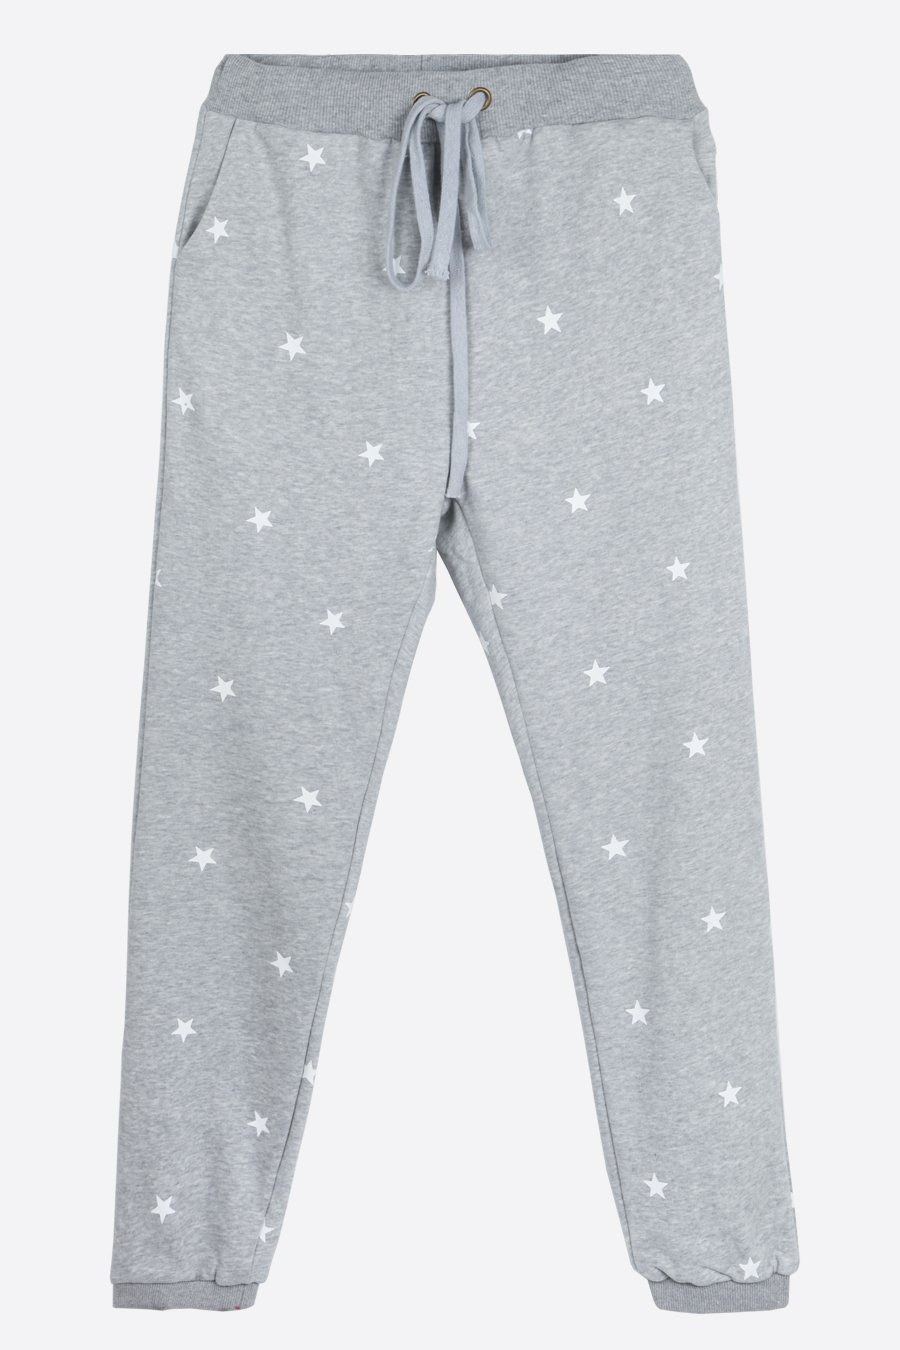 All Over Star Jogger Trousers - Light Grey